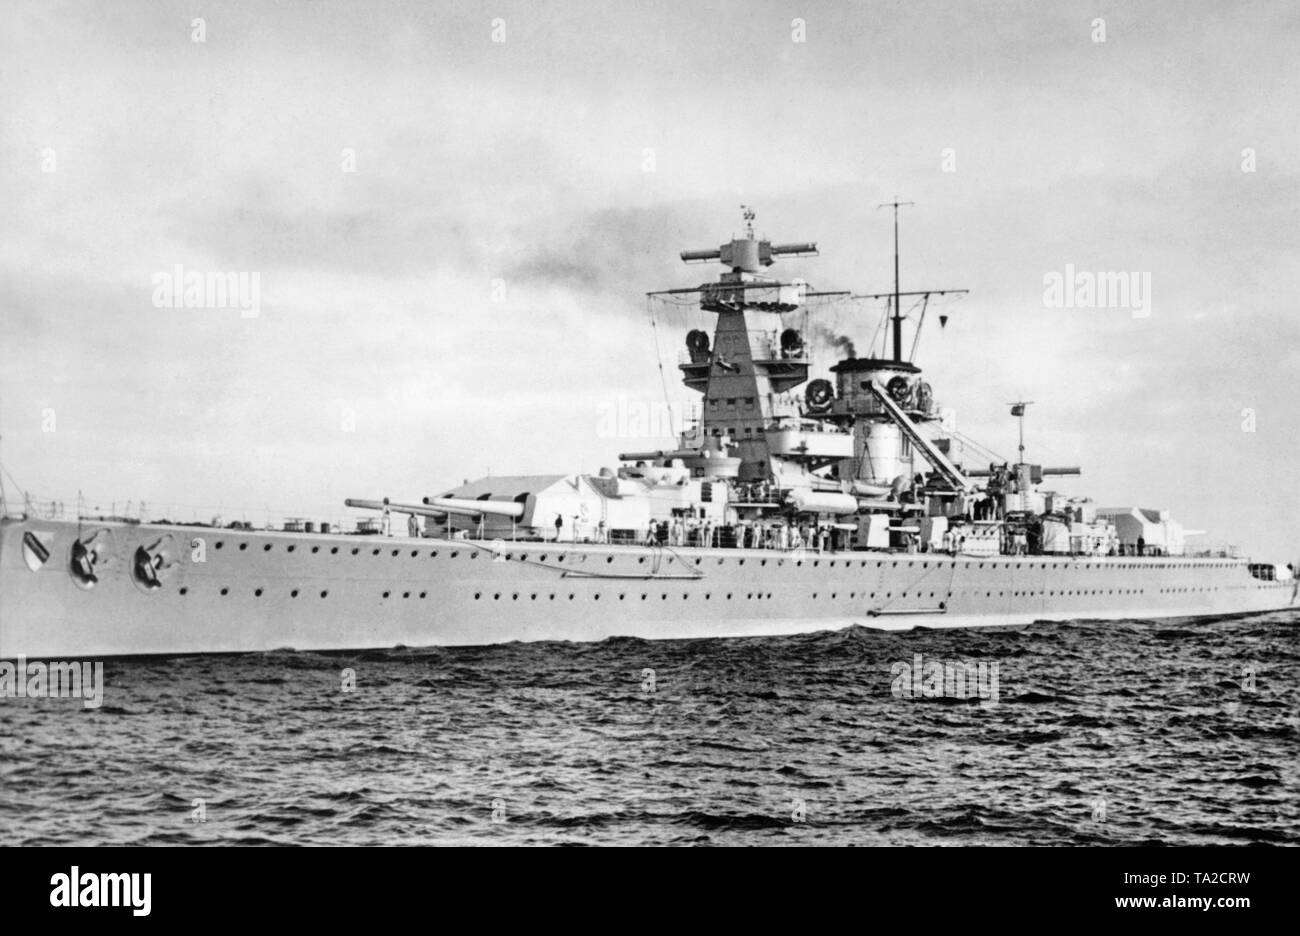 In the autumn of 1940 the German cruiser Deutschland was renamed Luetzow (after Prussian General Adolf von Luetzow) and reclassified as a heavy cruiser. It took part in the occupation of Norway in April 1940 after a general overhaul at the Gdansk shipyard. The bridge and the superstructures were completely redesigned. - Stock Image